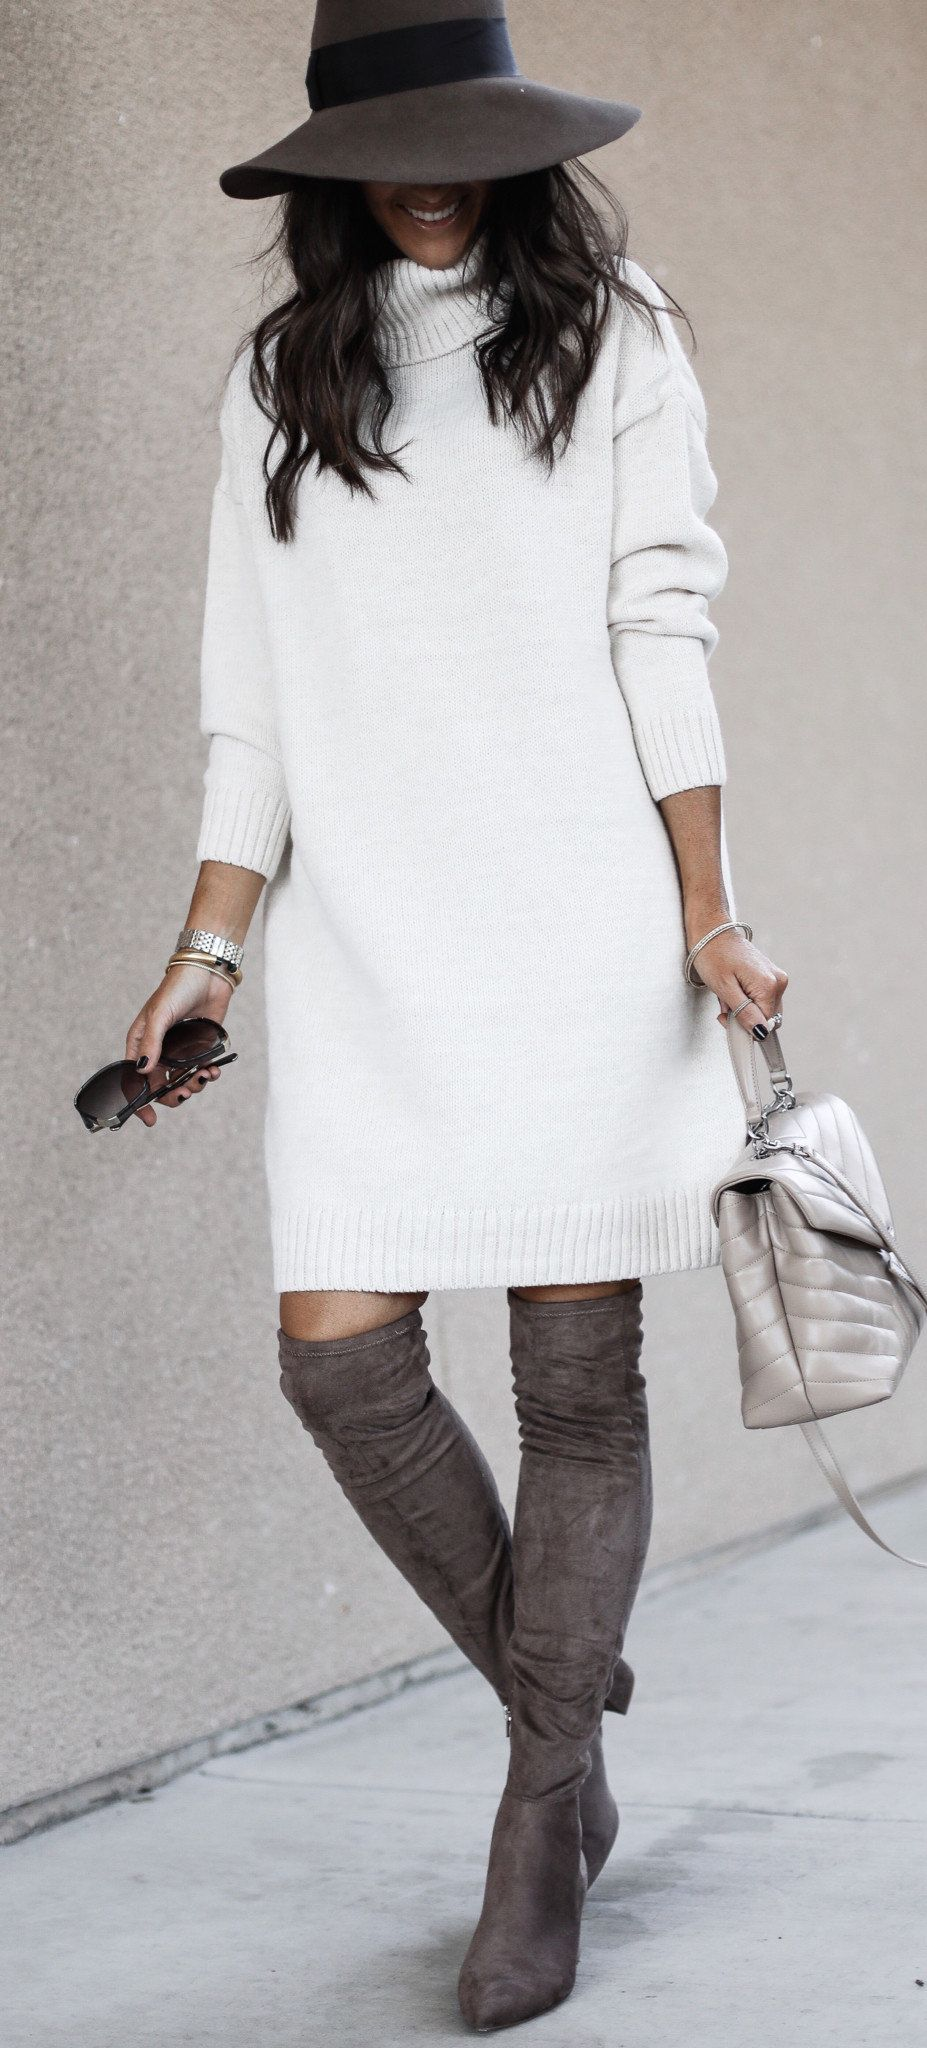 white long-sleeved dress and black hat